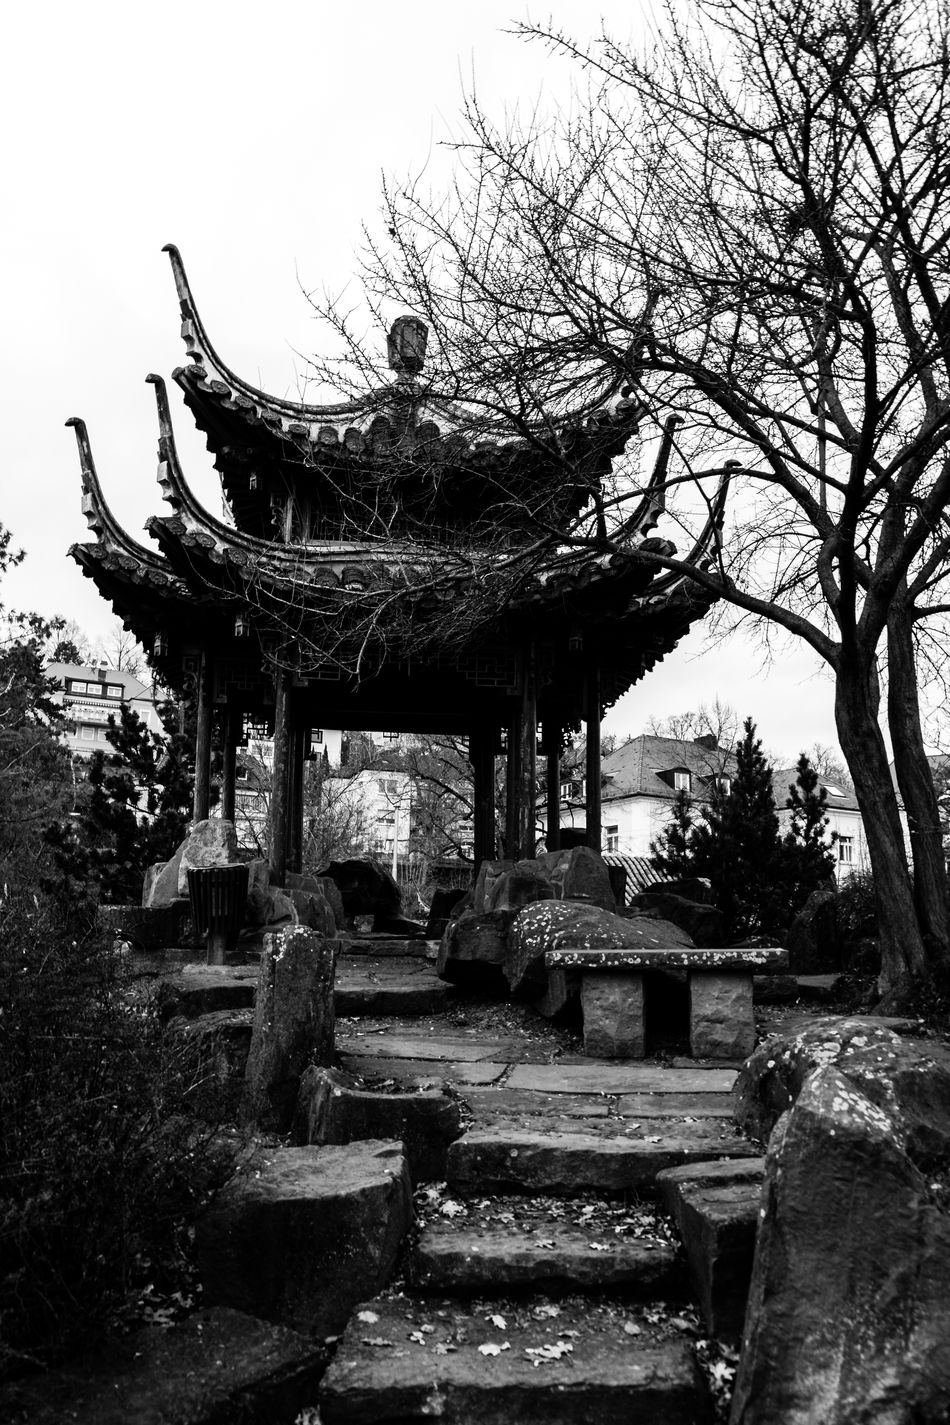 China garden Beautiful Black & White Black And White Blackandwhite China China Garden Day EyeEm EyeEm Best Shots Garden Germany Instagram Leaves No People Old Old Building  Outdoors Sky Stairway Stuttgart Tree Trip